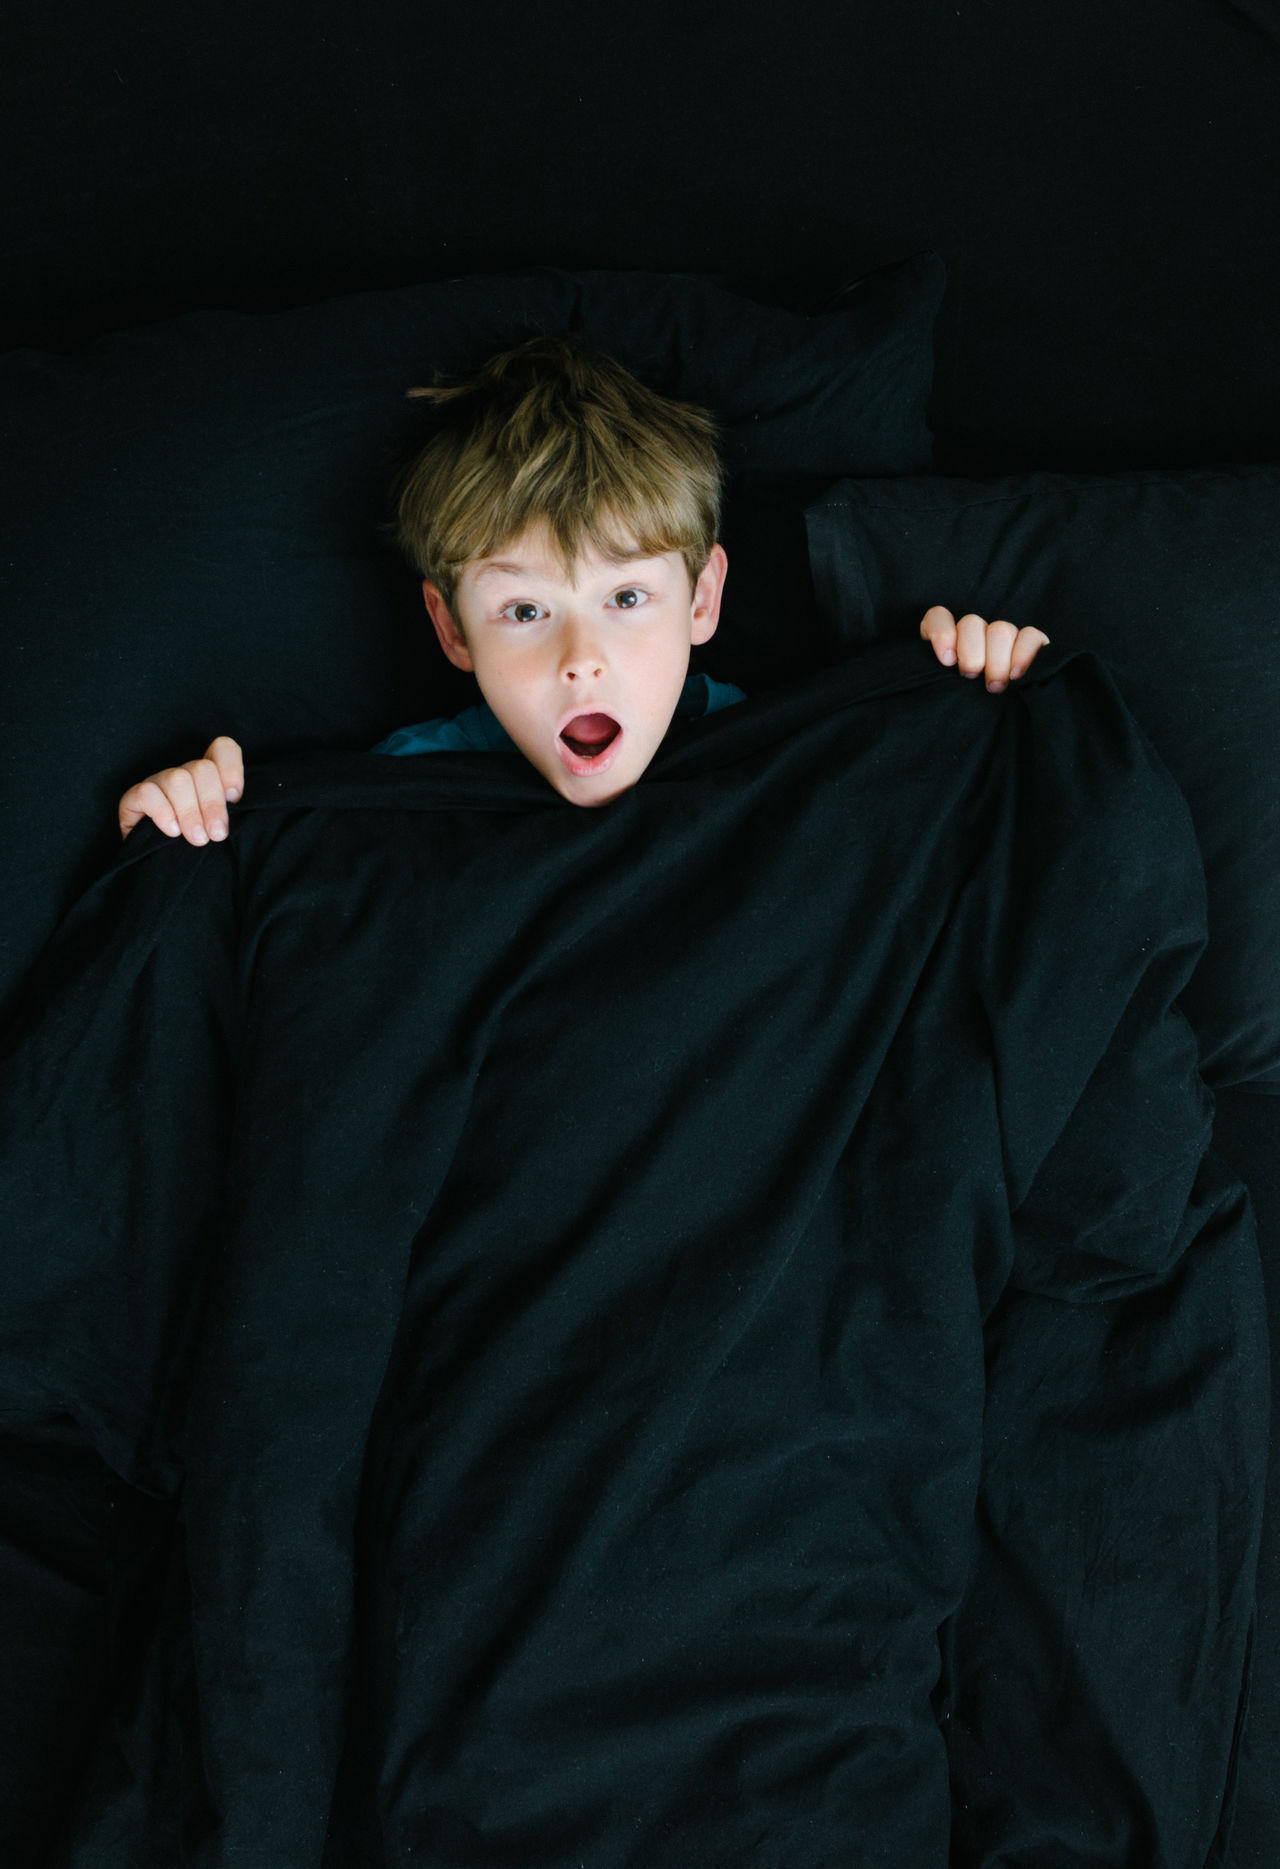 Boy under black sheets in bad with shock surprise face Awake Bed Black Color Boy Caucasian Child Dark Dark Emotion European  Horror Indoors  Kids Mouth Open One Person People Portrait Shock Spooky Surprise Welcome To Black White